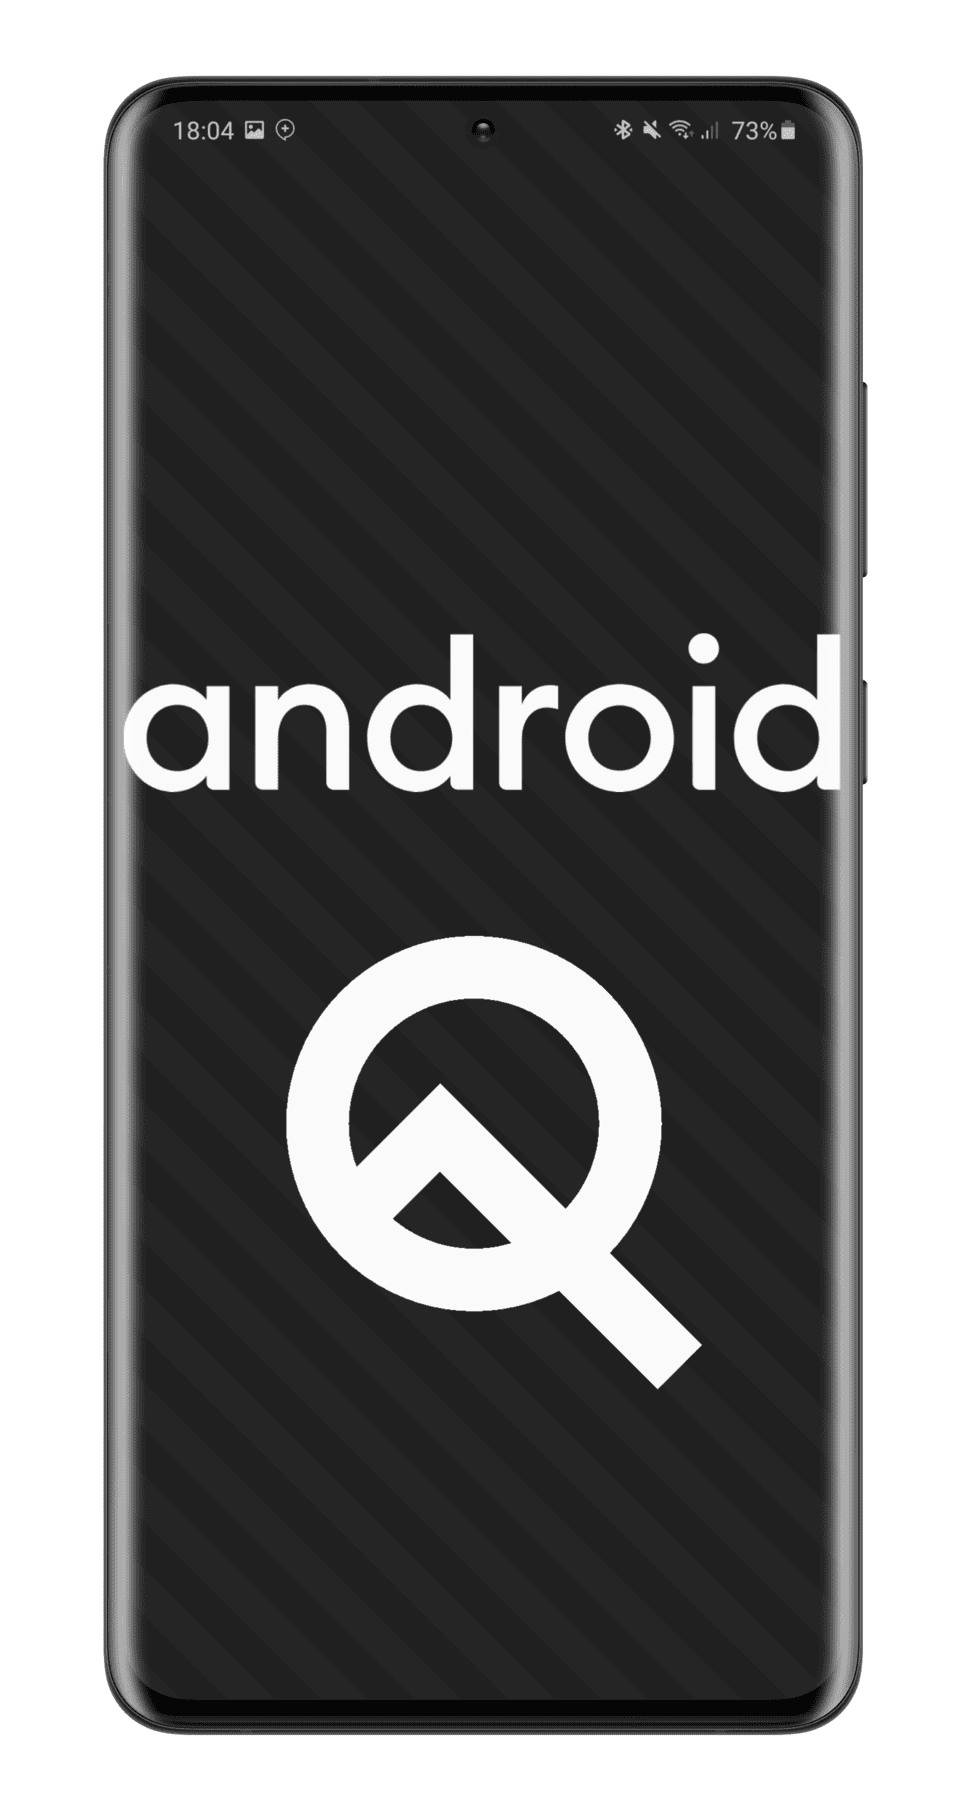 easter-egg-android-10